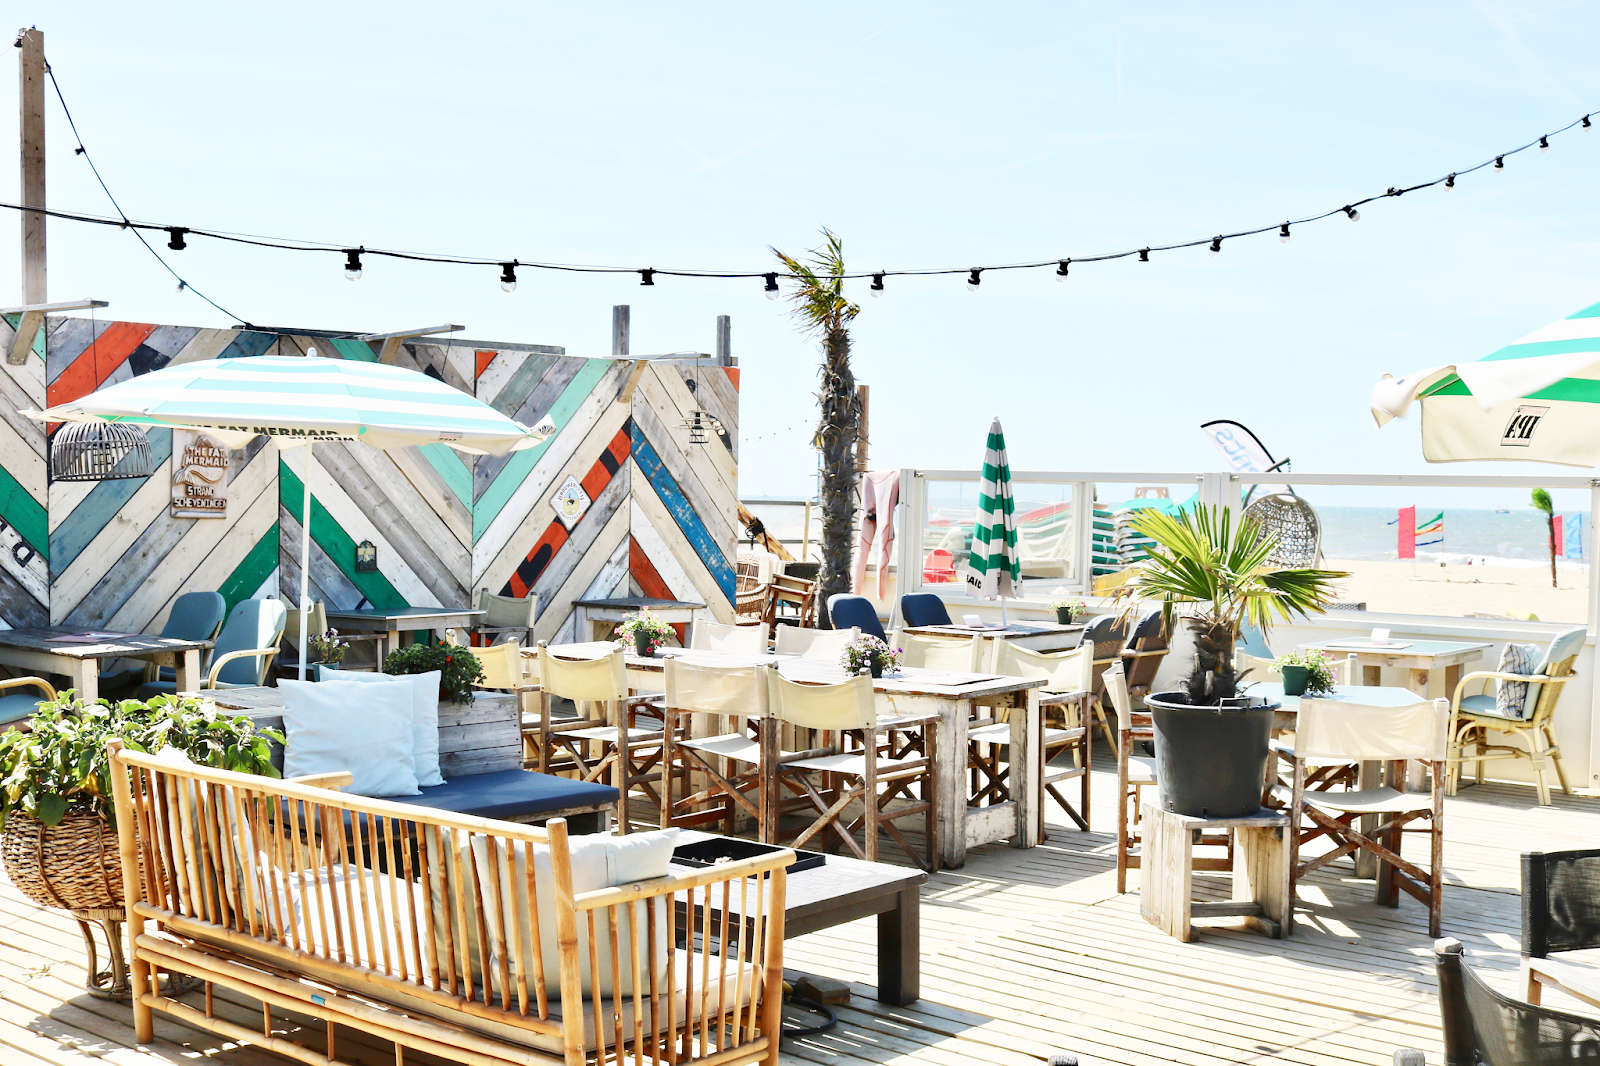 Hotspot | The Fat Mermaid Scheveningen